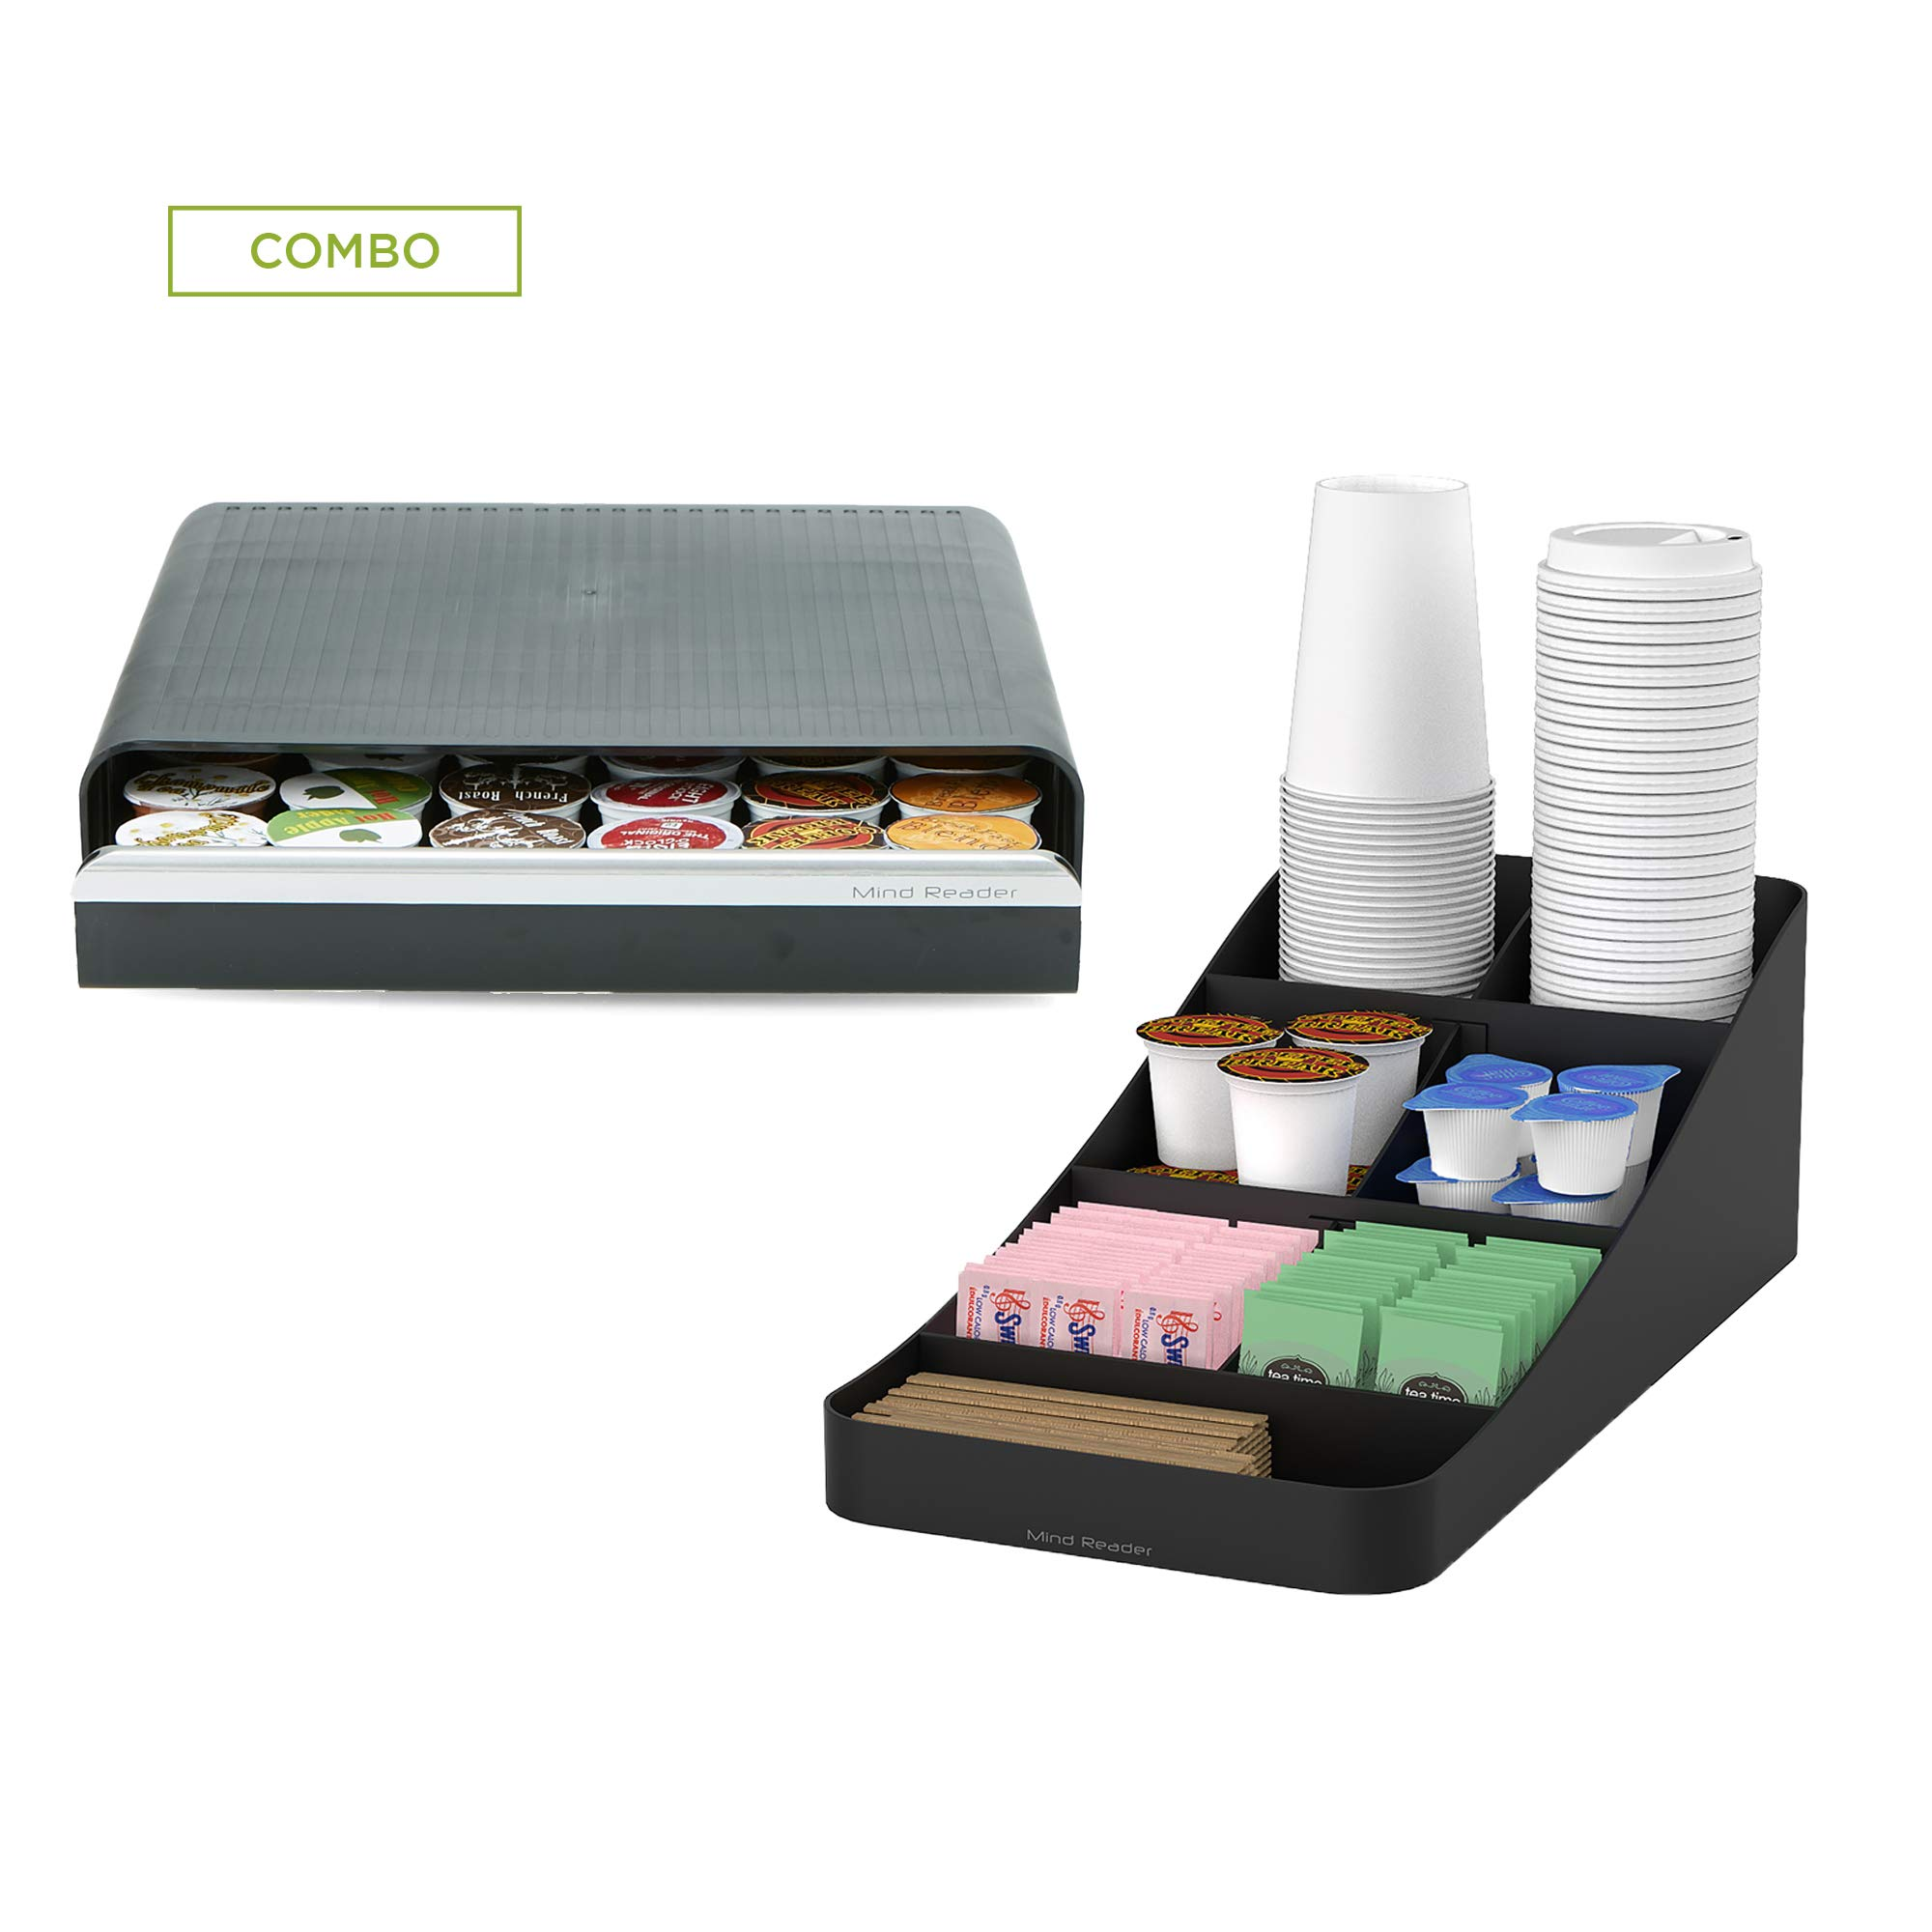 Mind Reader COMP726-BLK 36 Capacity K-Cup Coffee Pod Storage Drawer with 7 Compartments for Cups, Lids, Sugars, Stirrers, Black